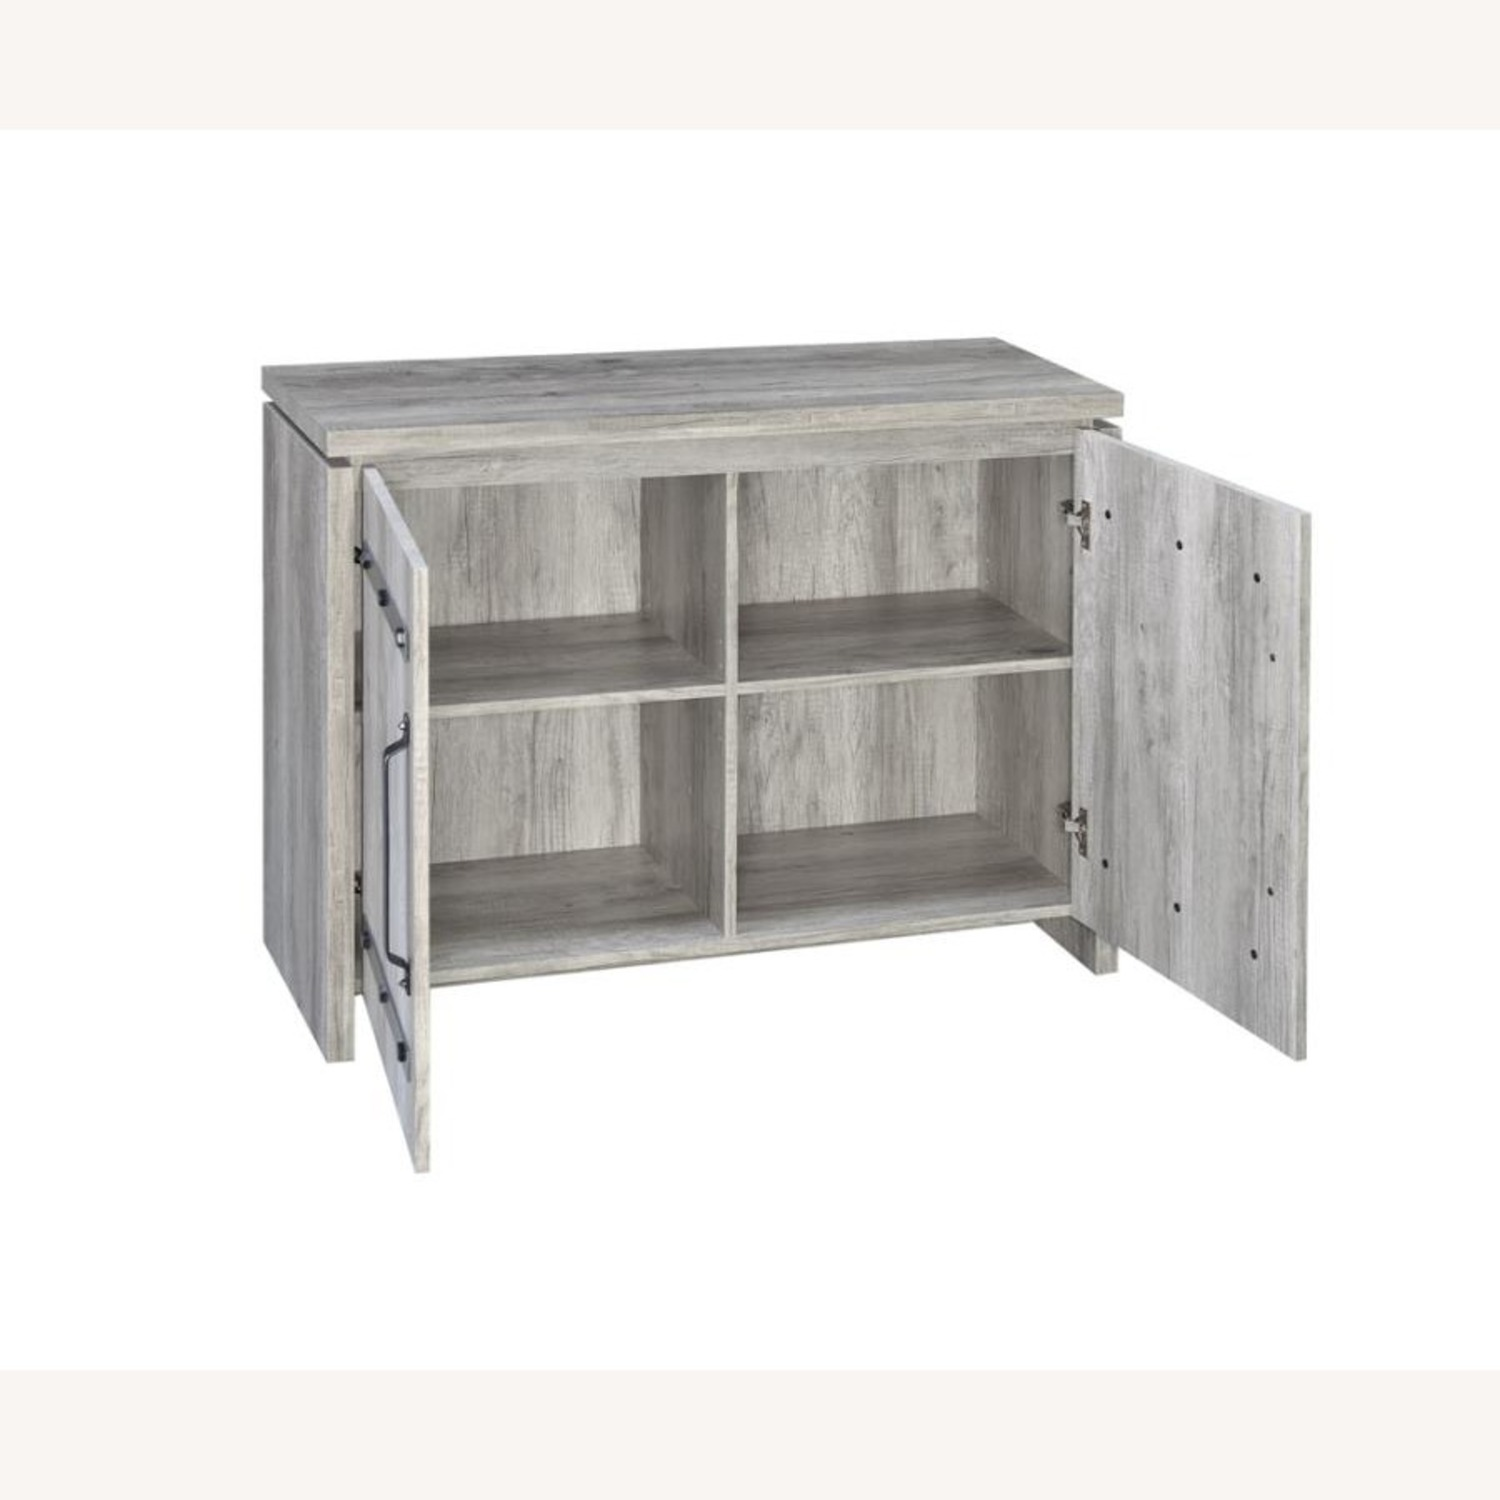 Accent Cabinet In Grey Driftwood Finish - image-1